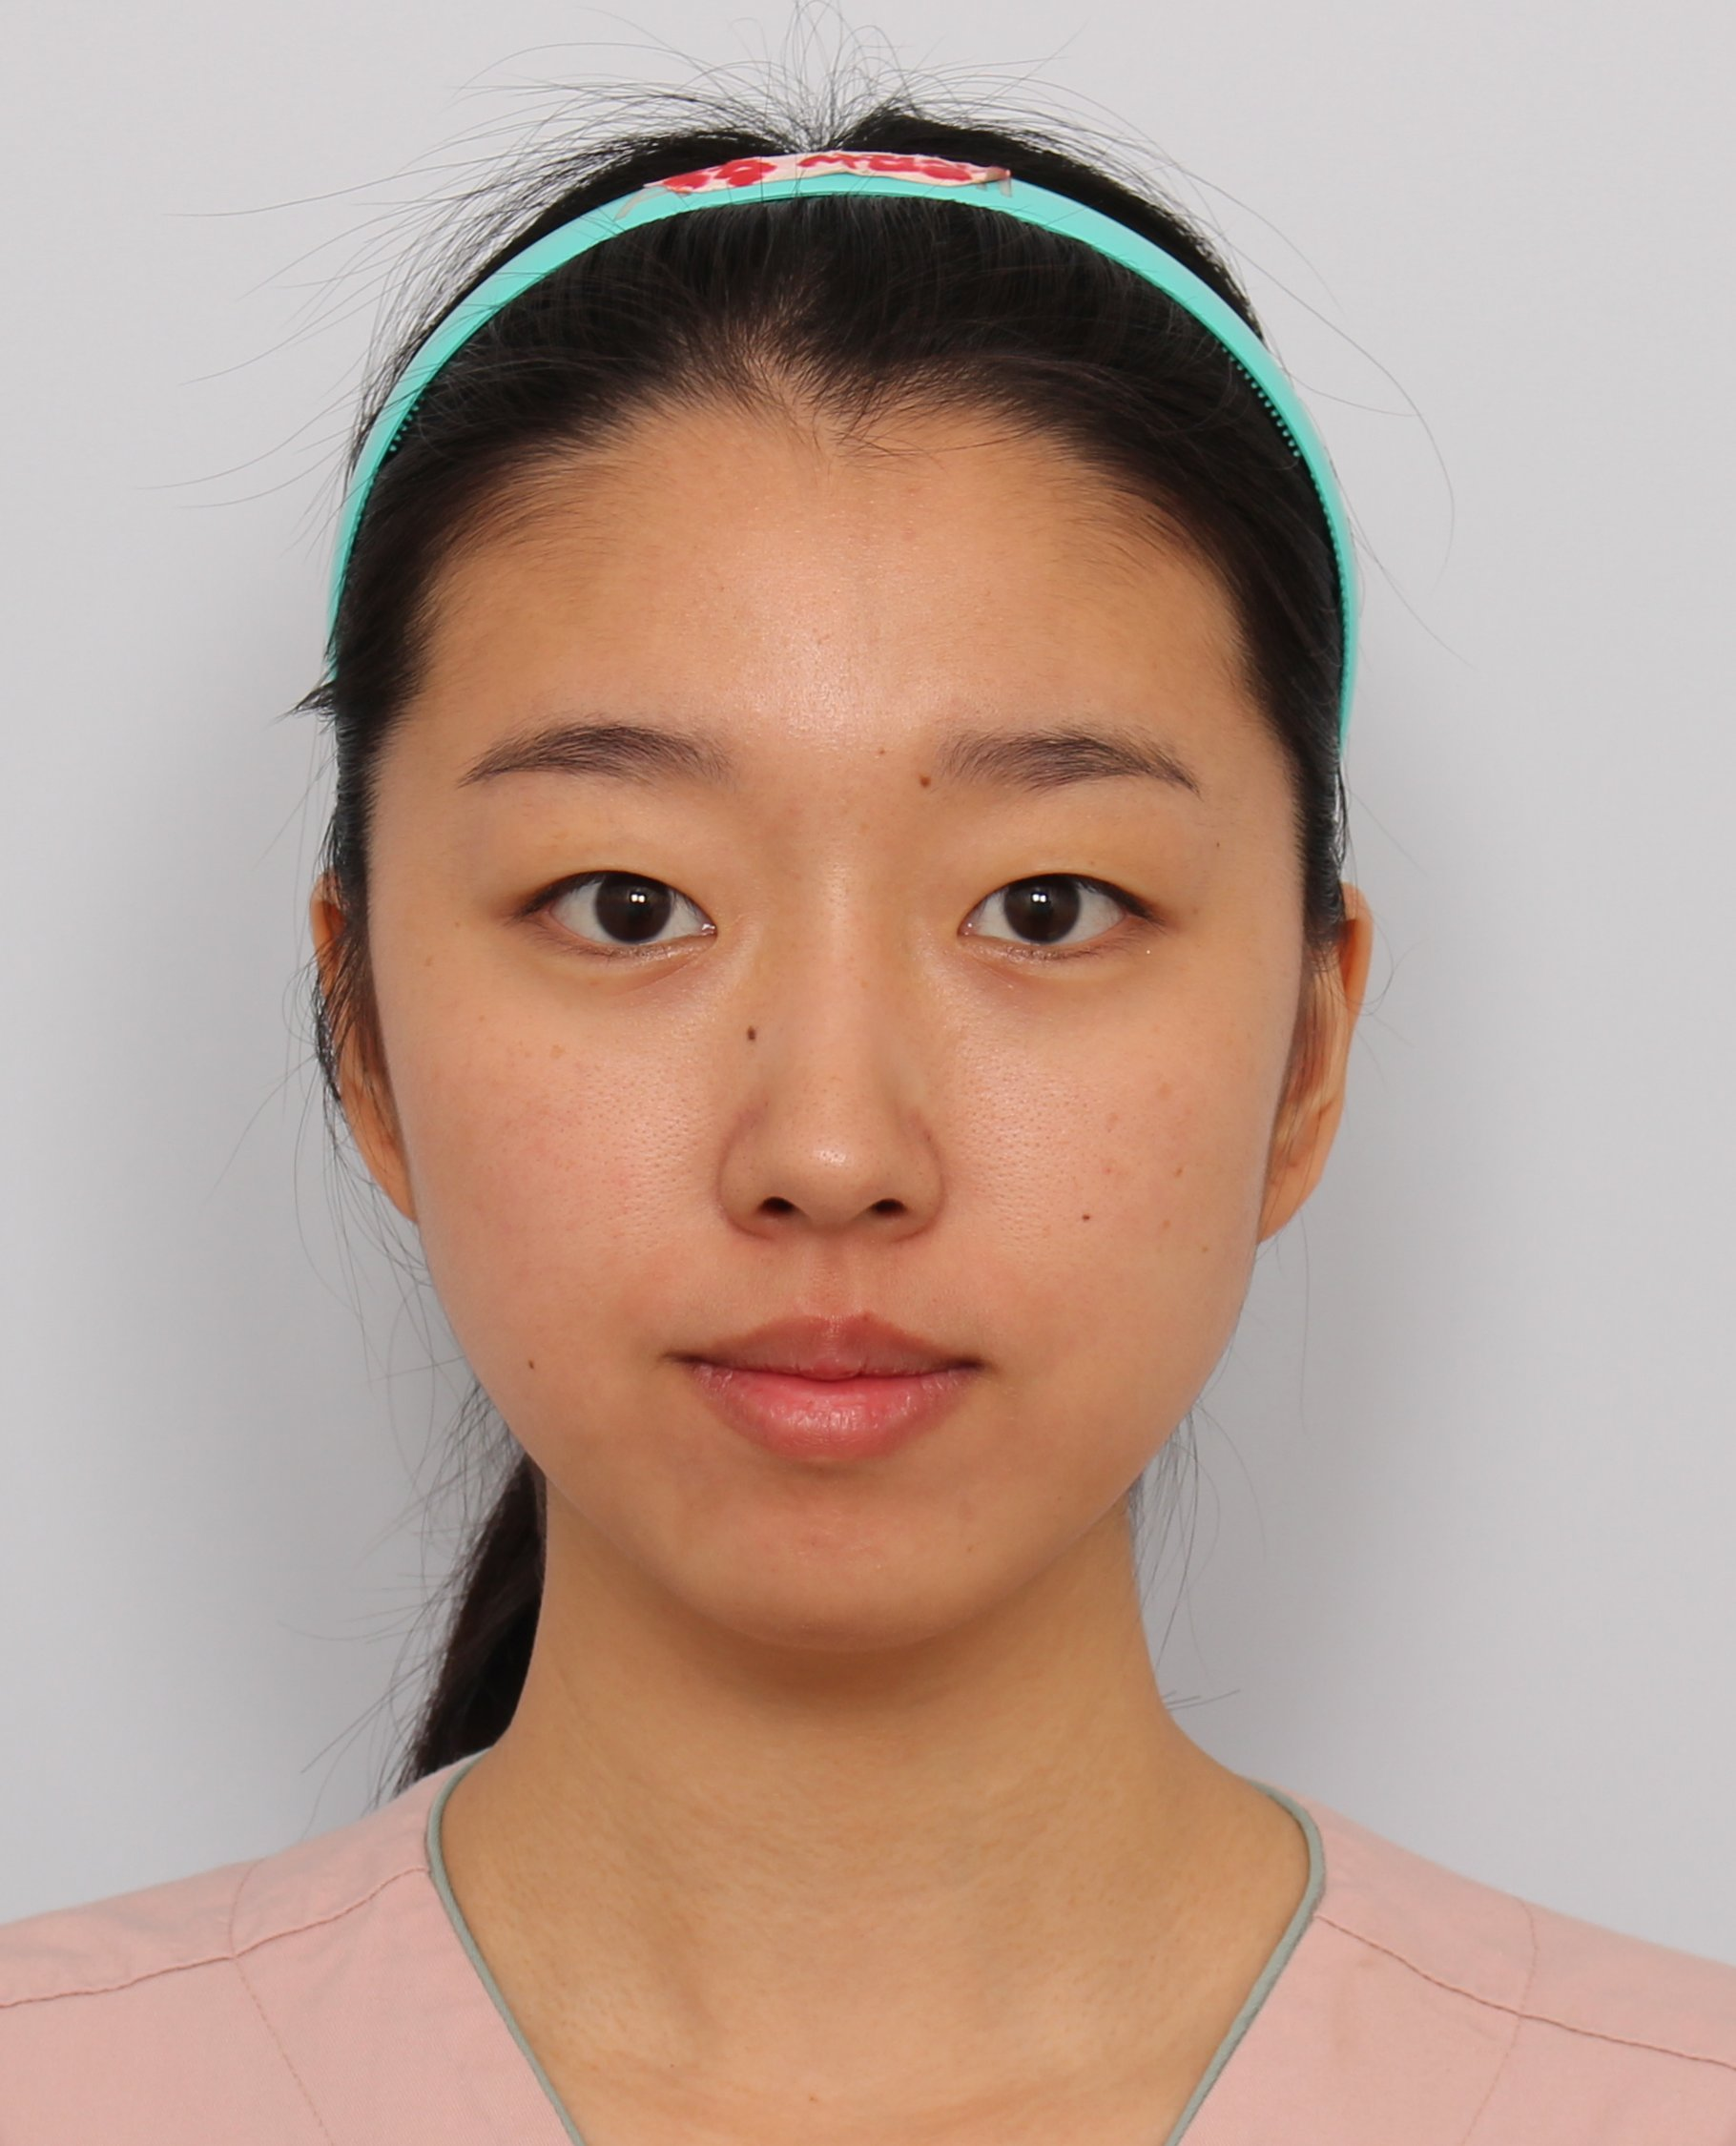 effects on plastic surgery Like any other medical treatment or operation, plastic surgery is accompanied by a number of potential side effects these side effects are worth considering before undergoing a procedure.